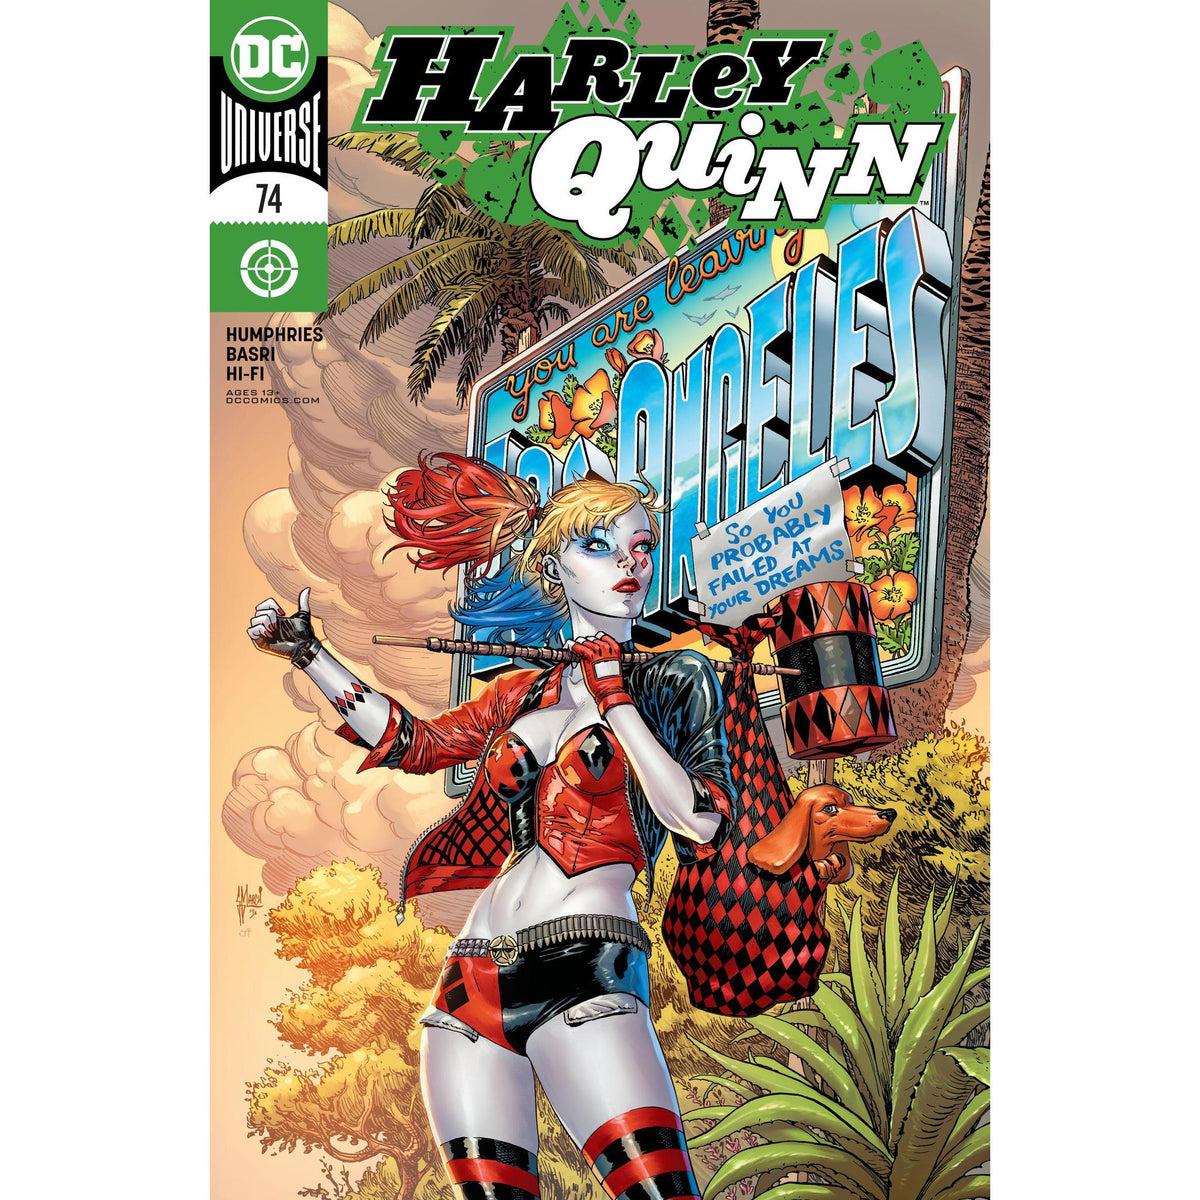 HARLEY QUINN #74 - MARCH MAIN COVER A